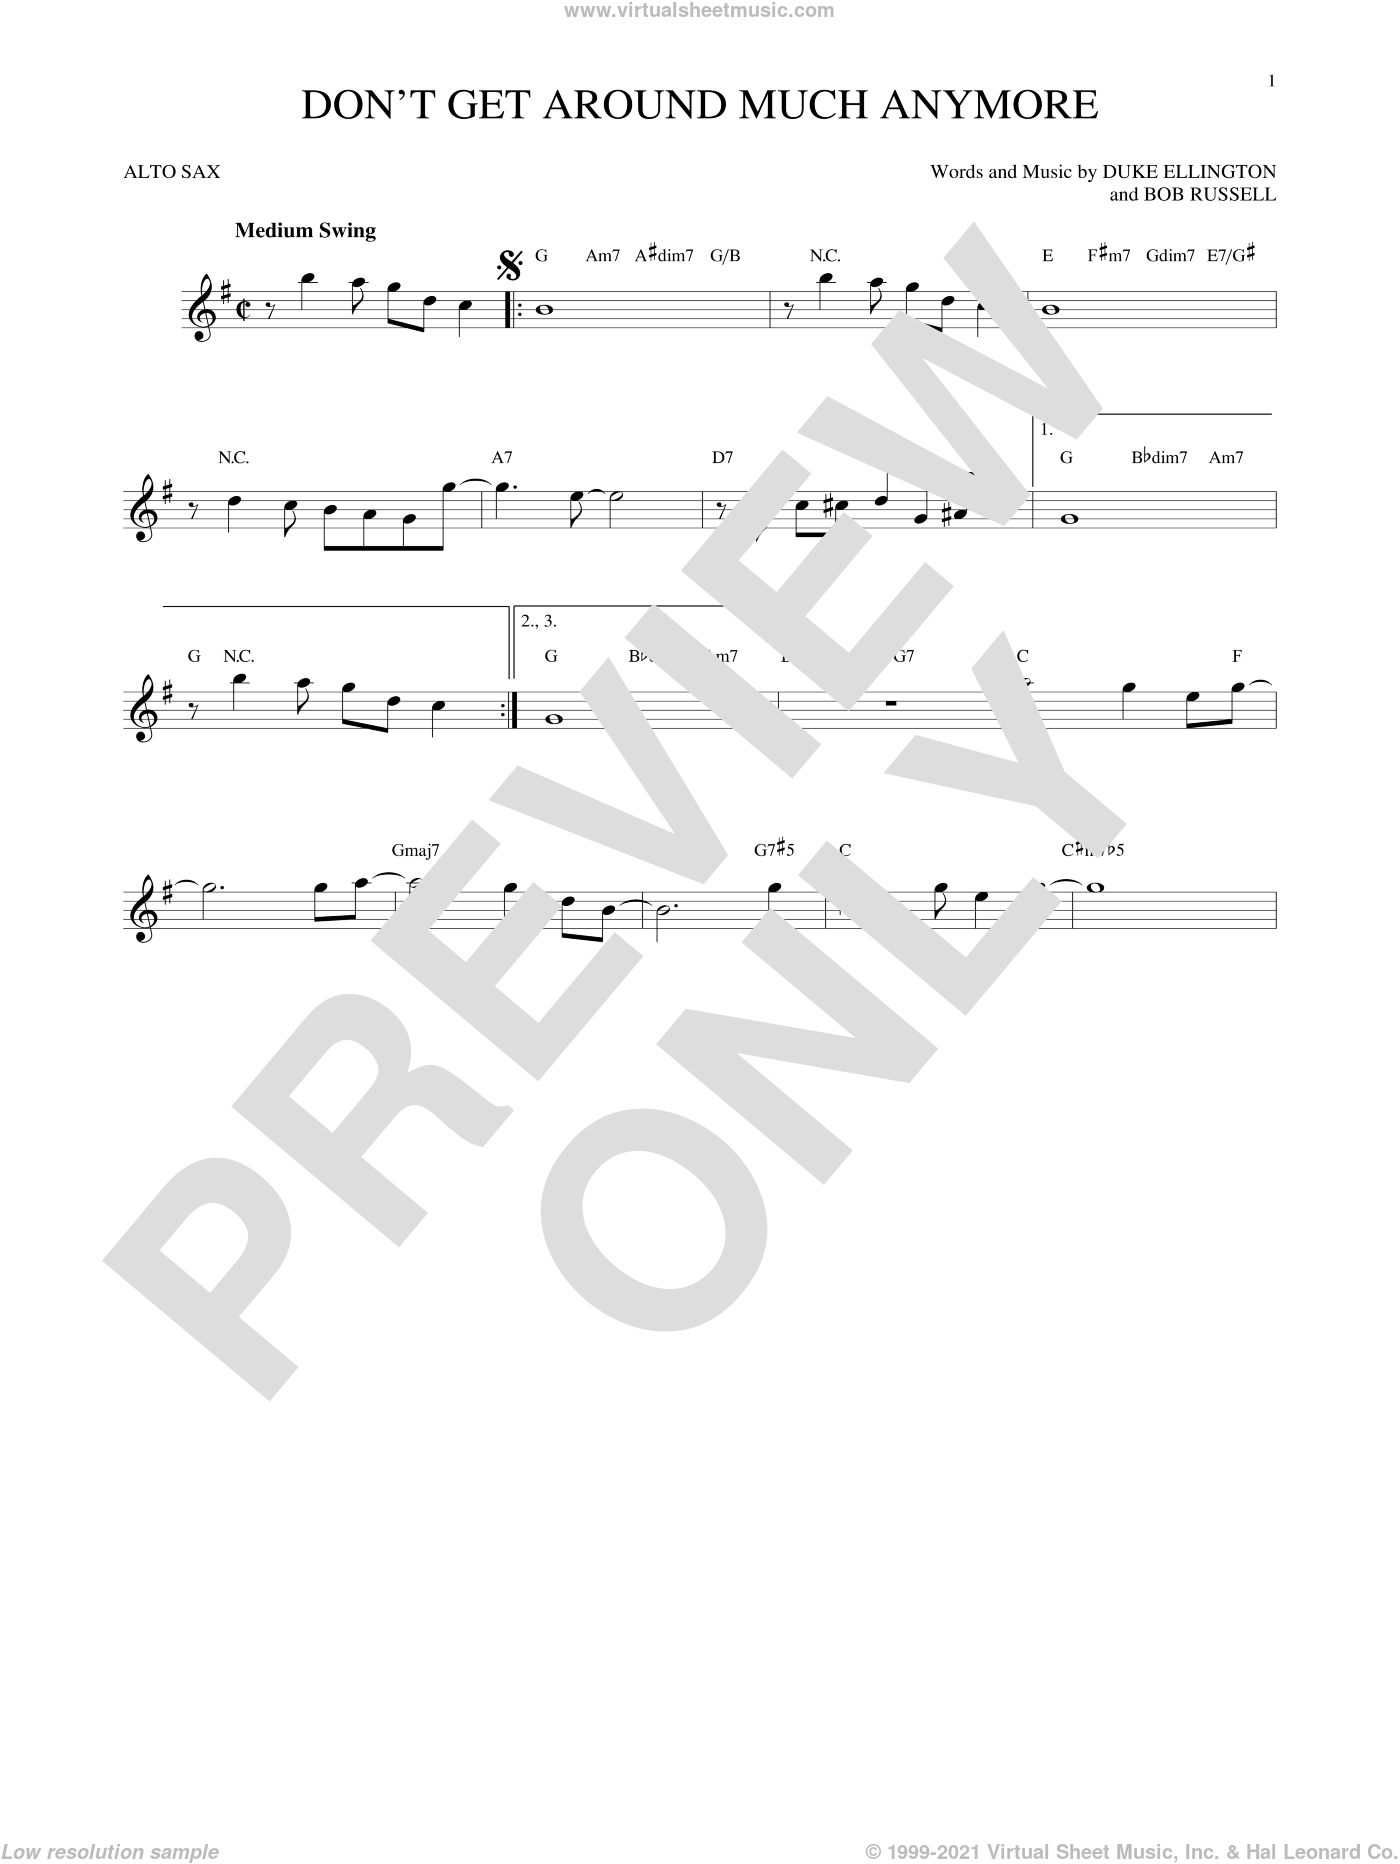 Don't Get Around Much Anymore sheet music for alto saxophone solo by Duke Ellington and Bob Russell, intermediate alto saxophone. Score Image Preview.